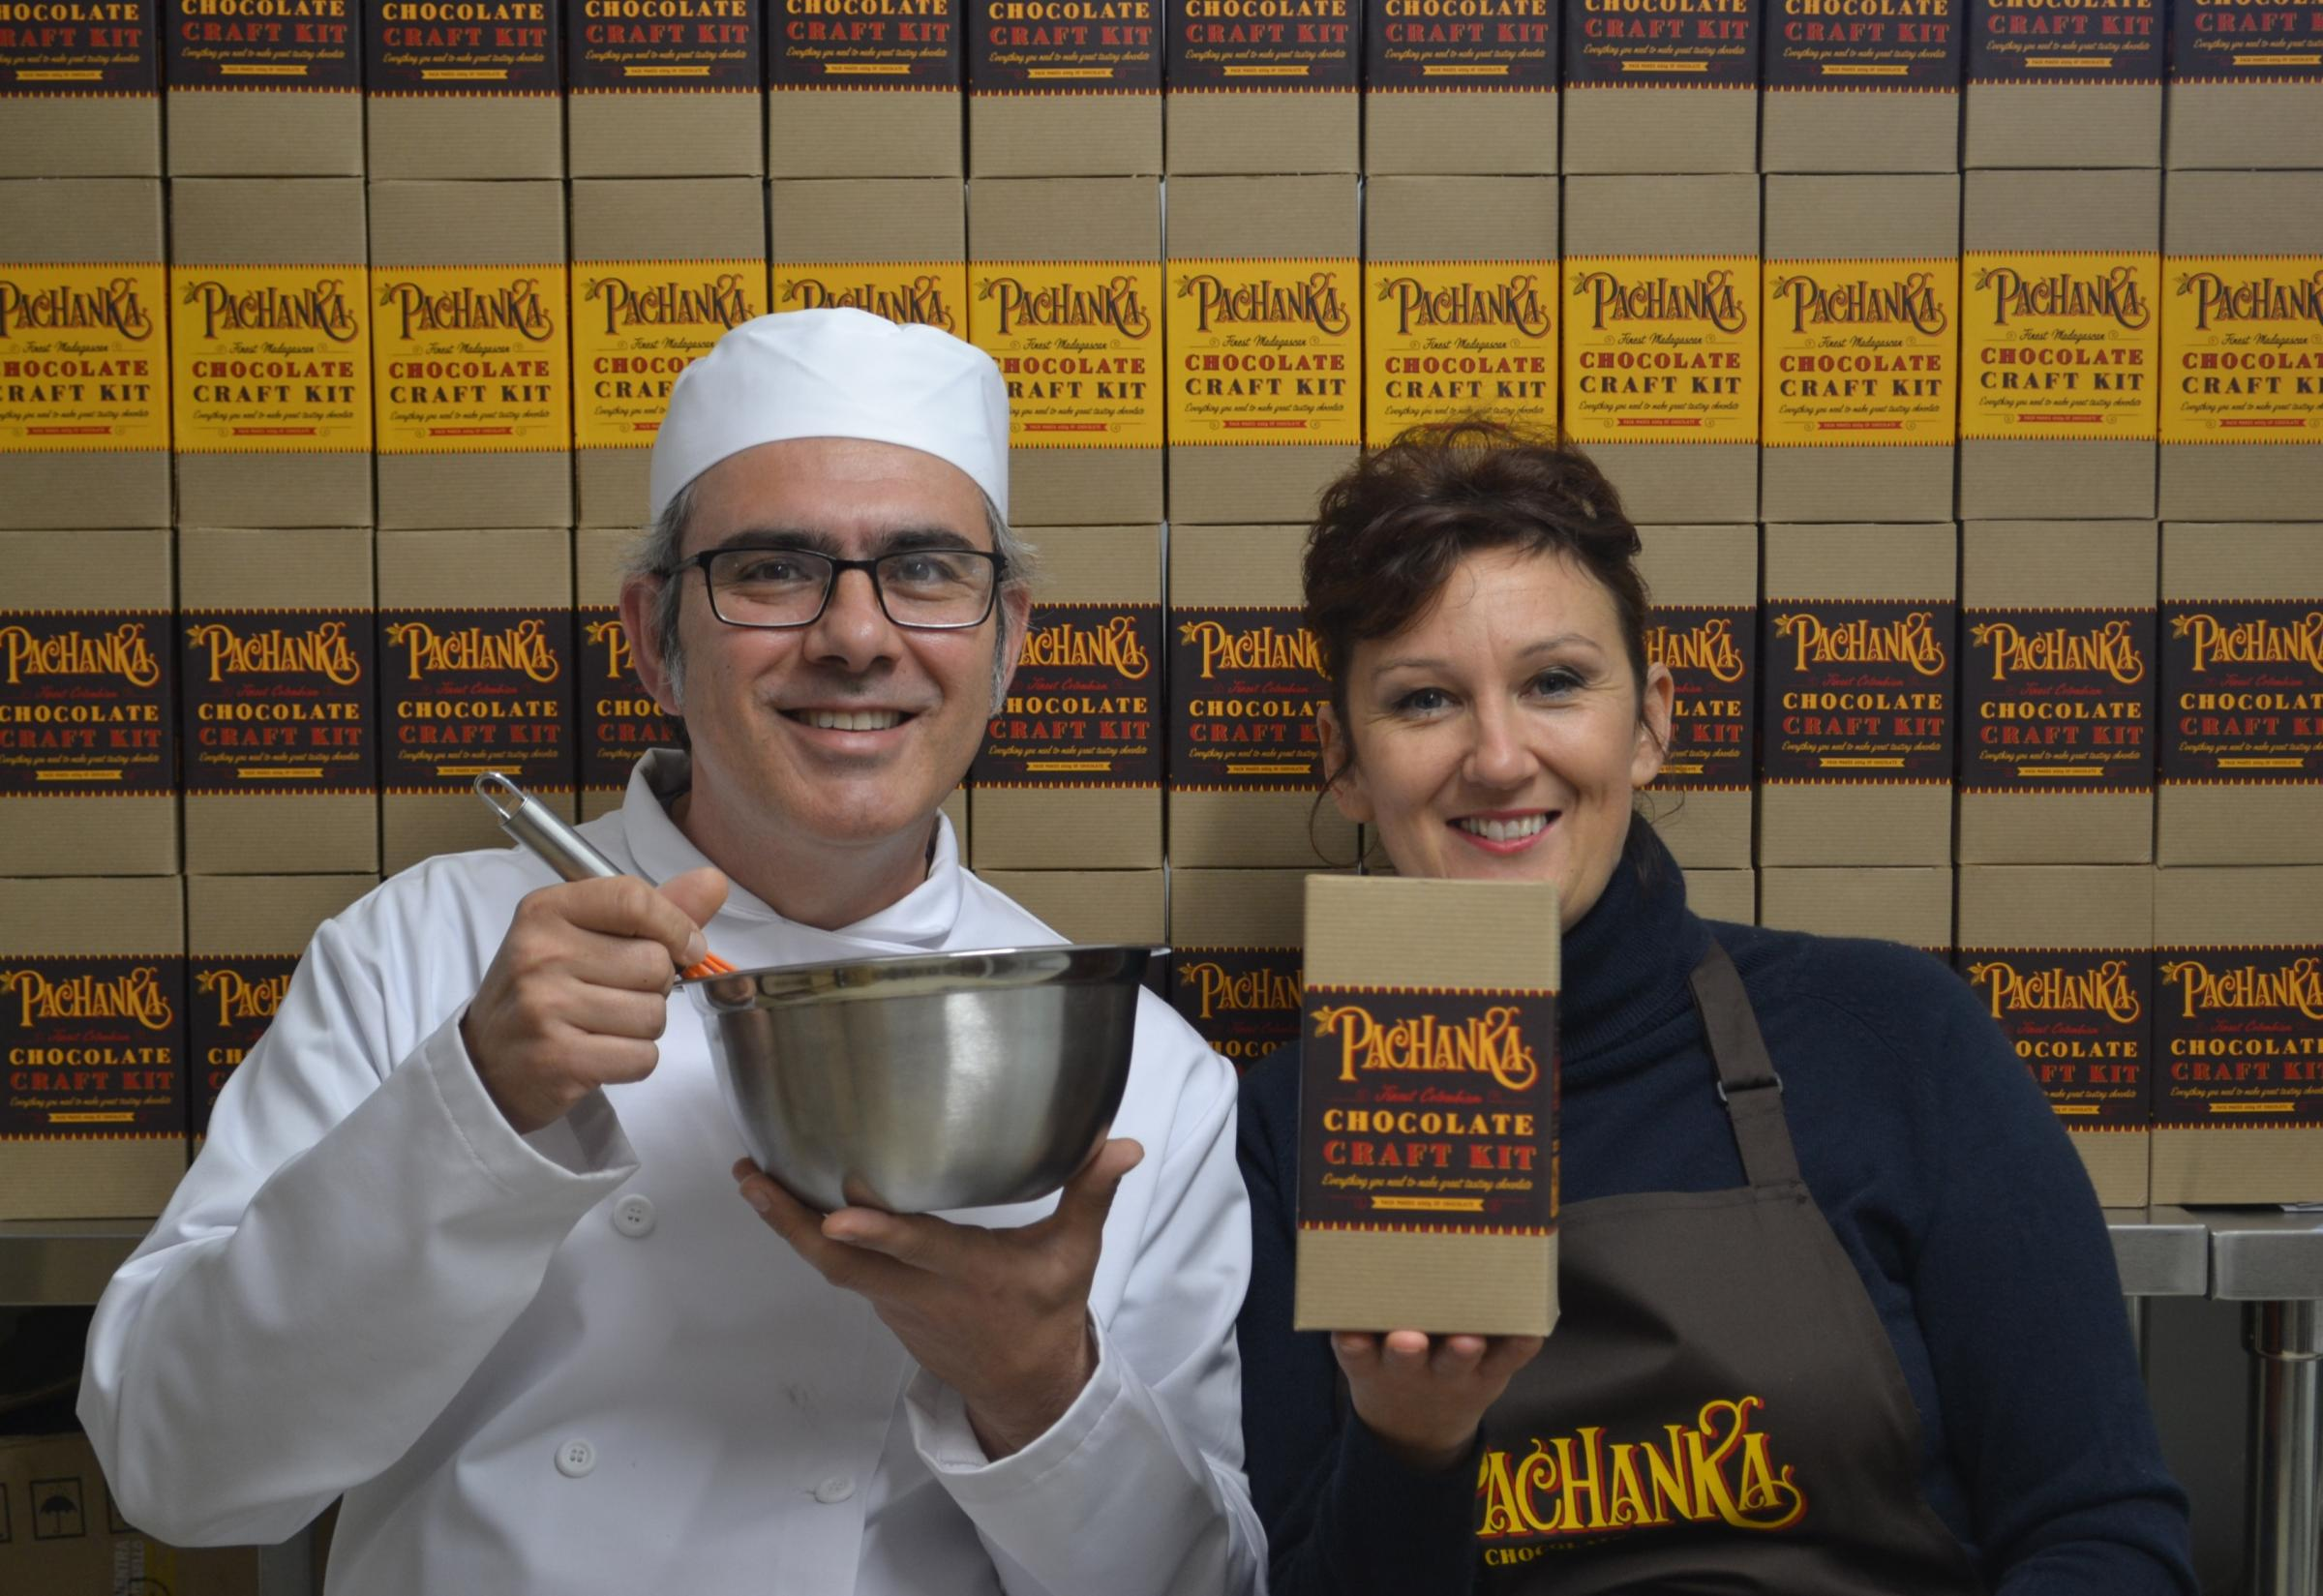 Suzanne James and Carlos Mendez with their new Pachanka Chocolate Craft Kit/Picture: Oiana James